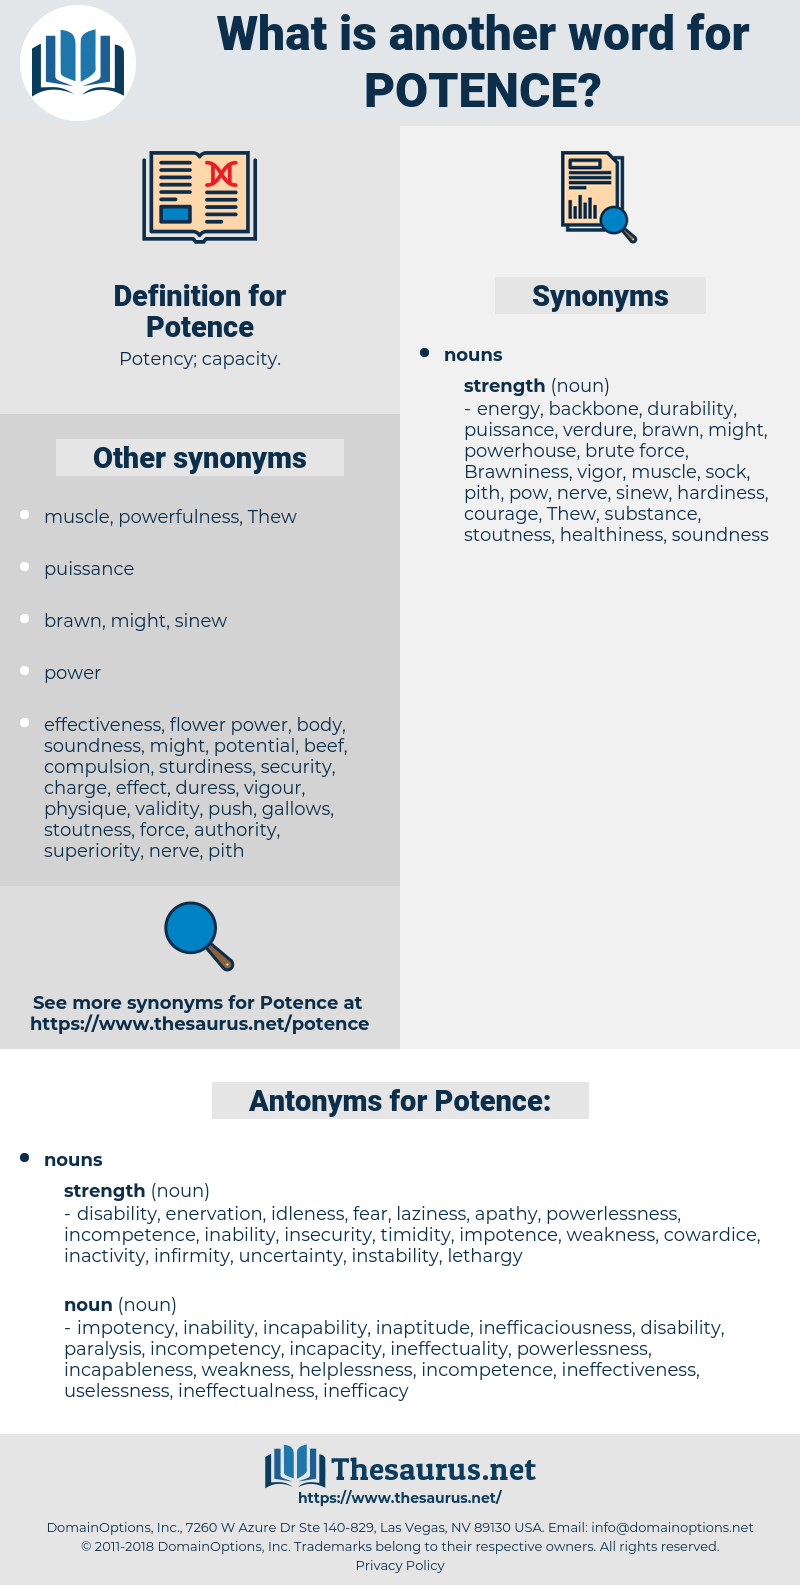 Potence, synonym Potence, another word for Potence, words like Potence, thesaurus Potence